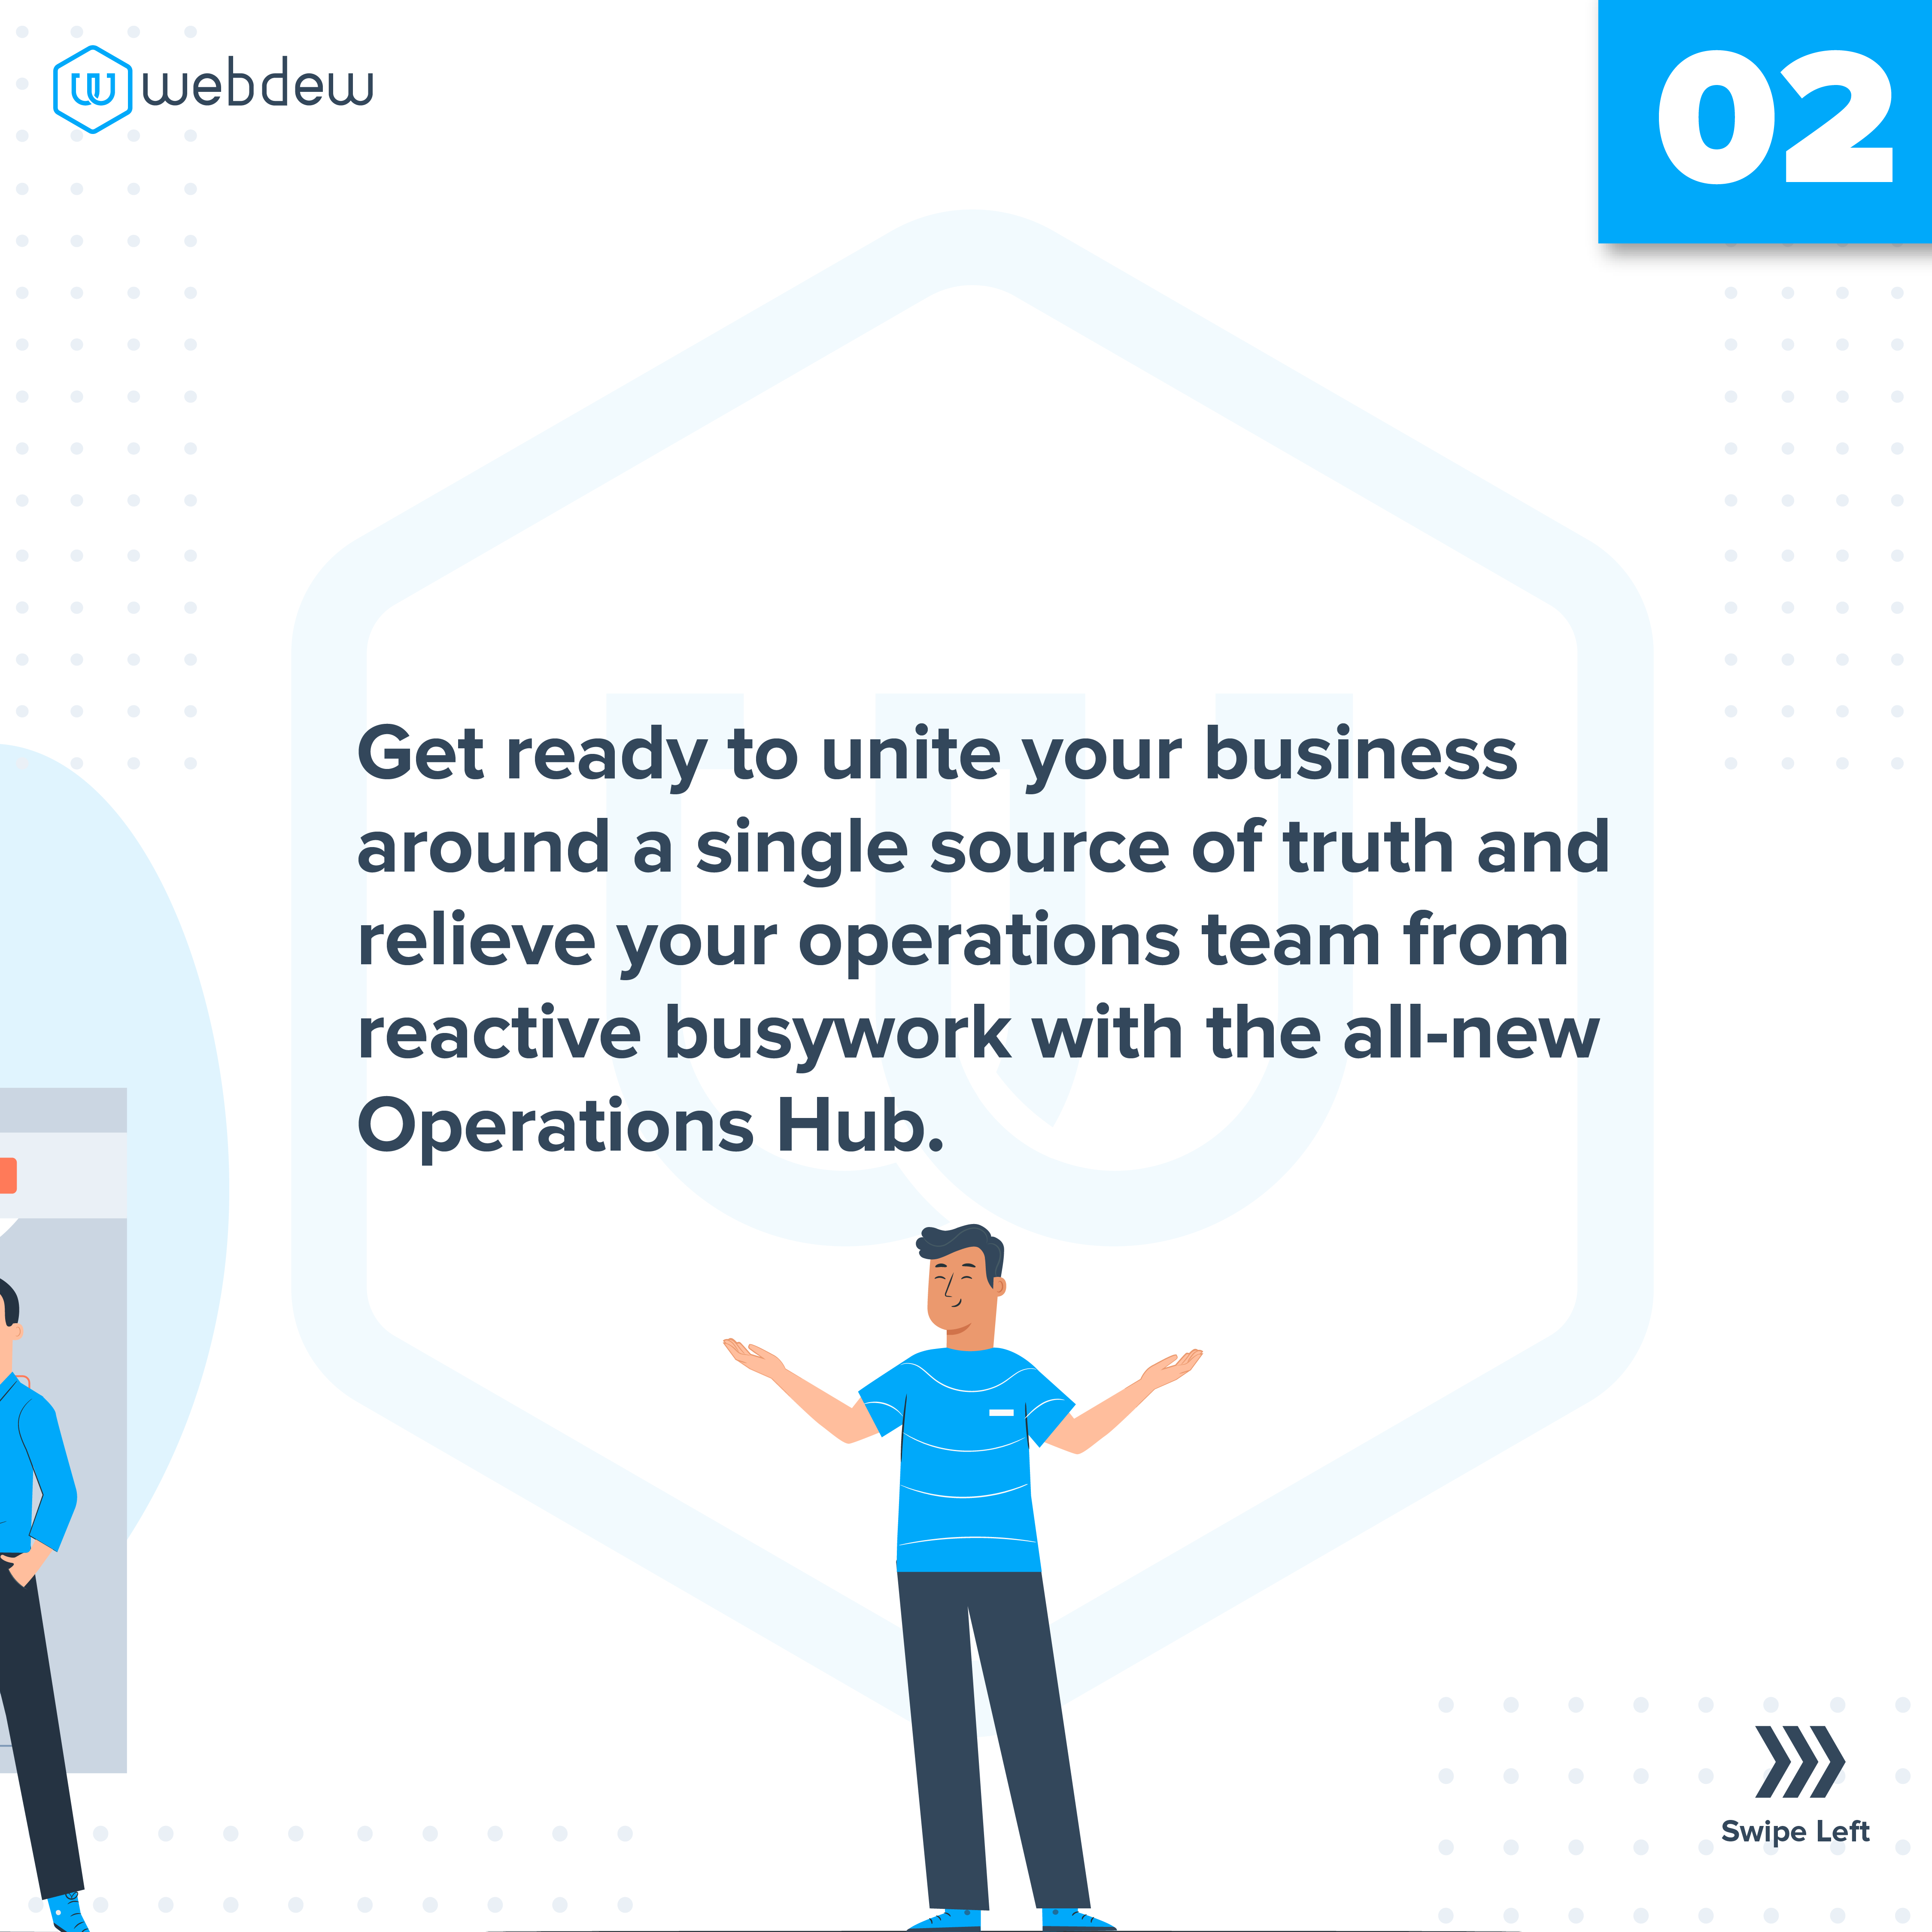 2- fact about operations hub